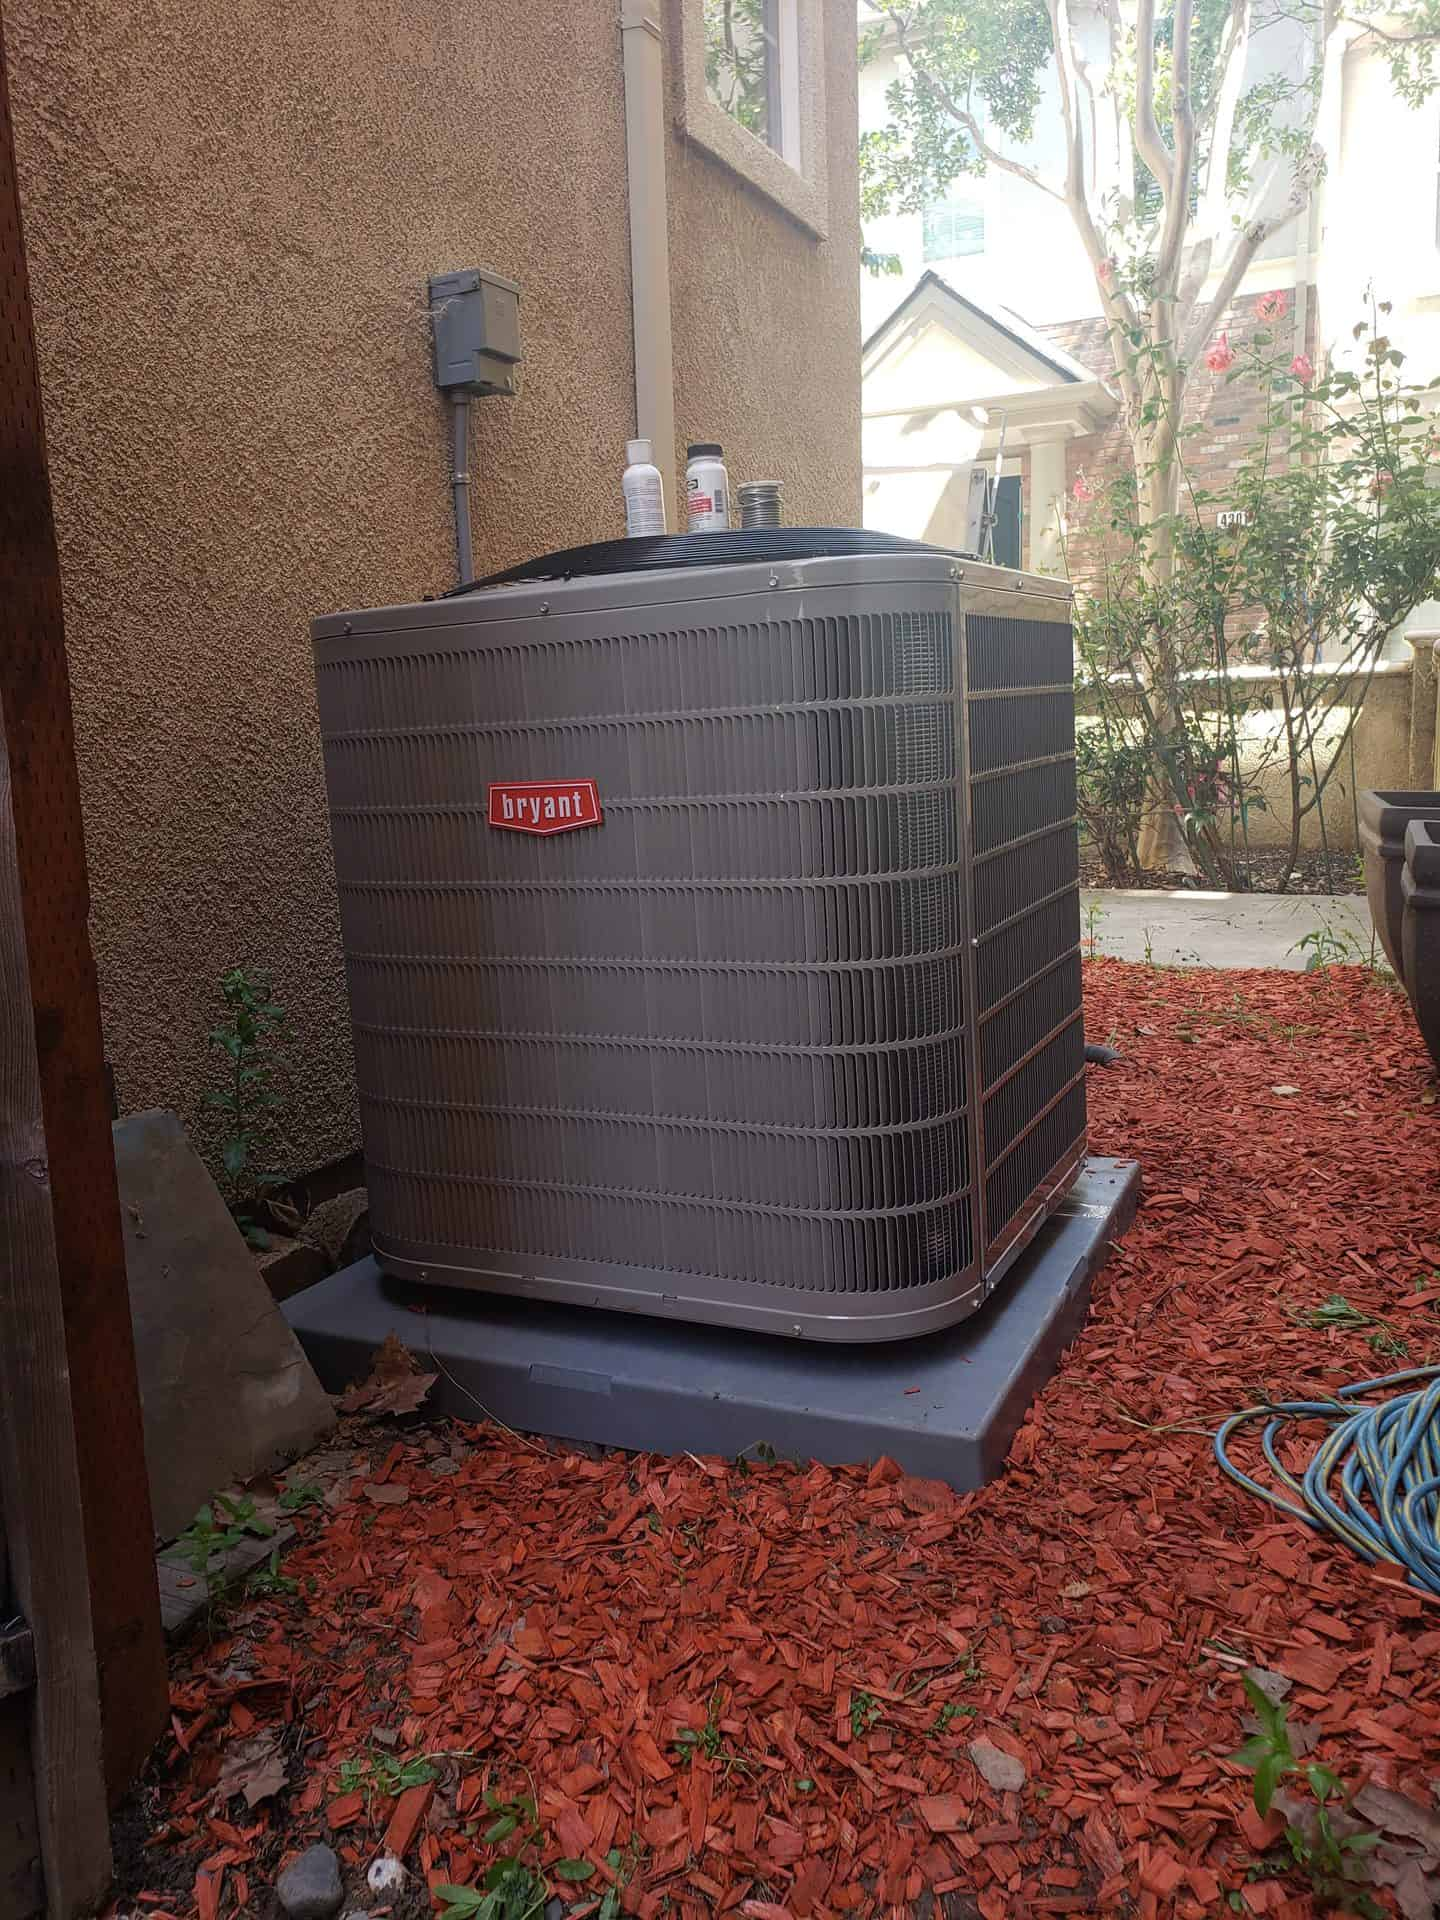 Bryant Preferred 2-Stage Air Conditioner Model 127a Installed by SVC